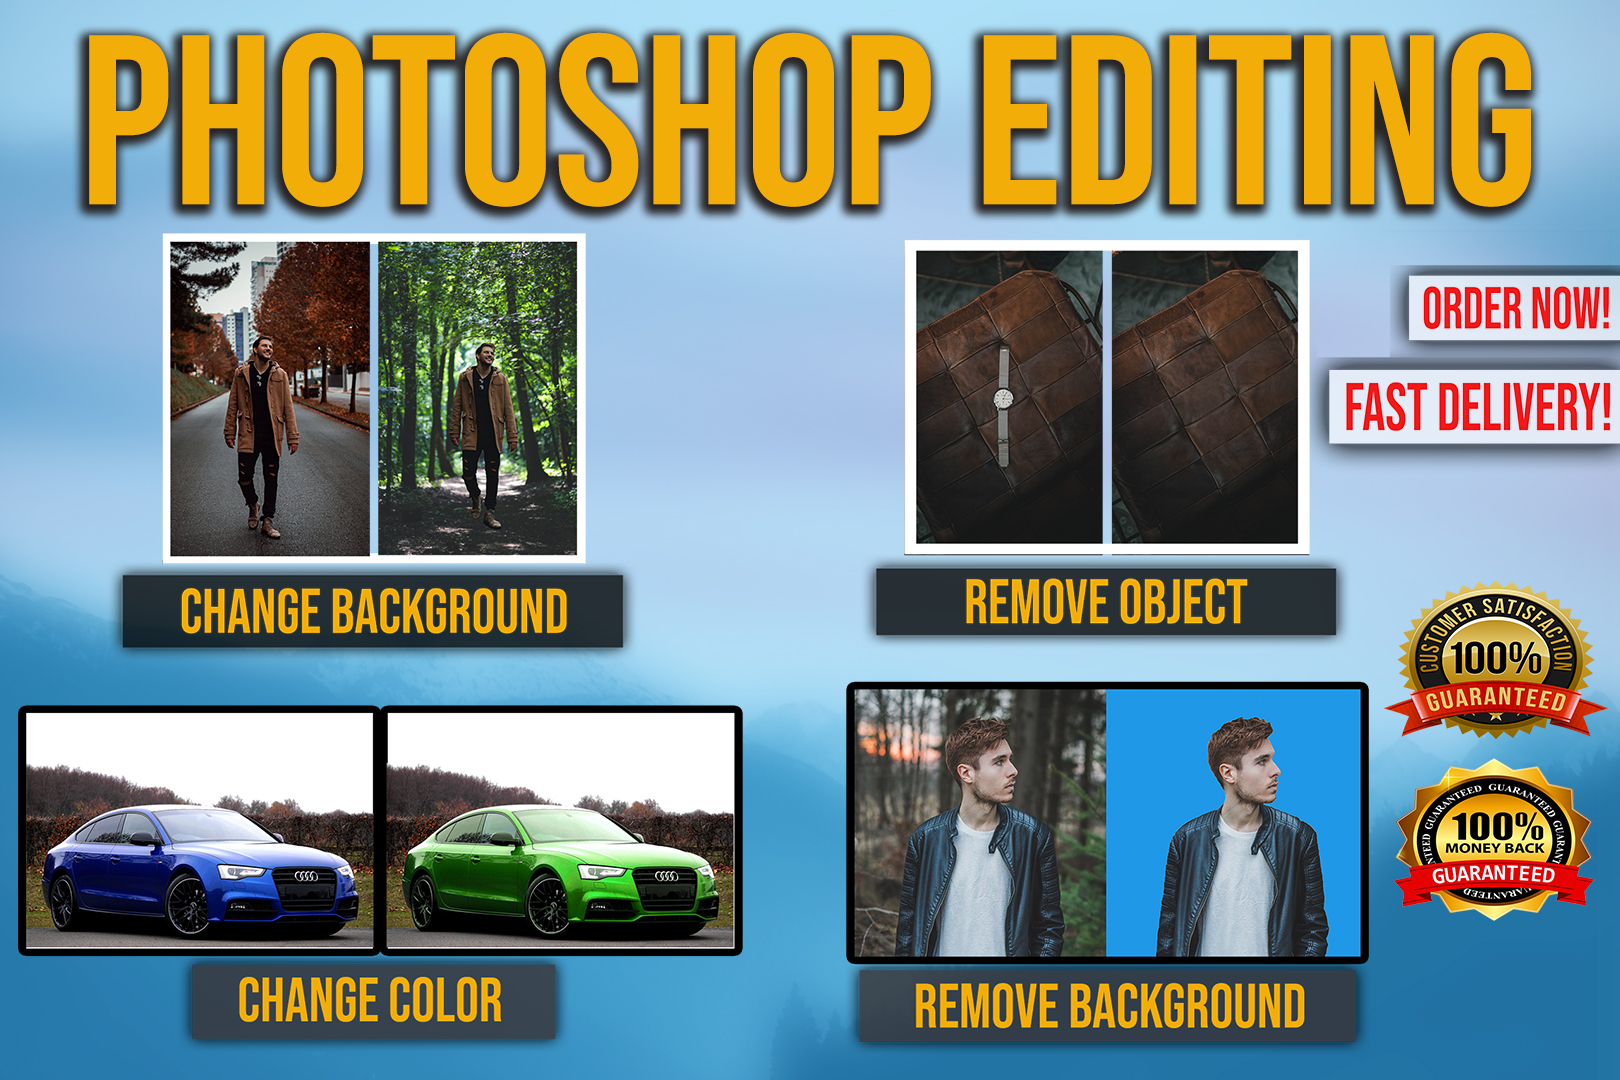 I will do any photoshop editing,  retouching fast delivery